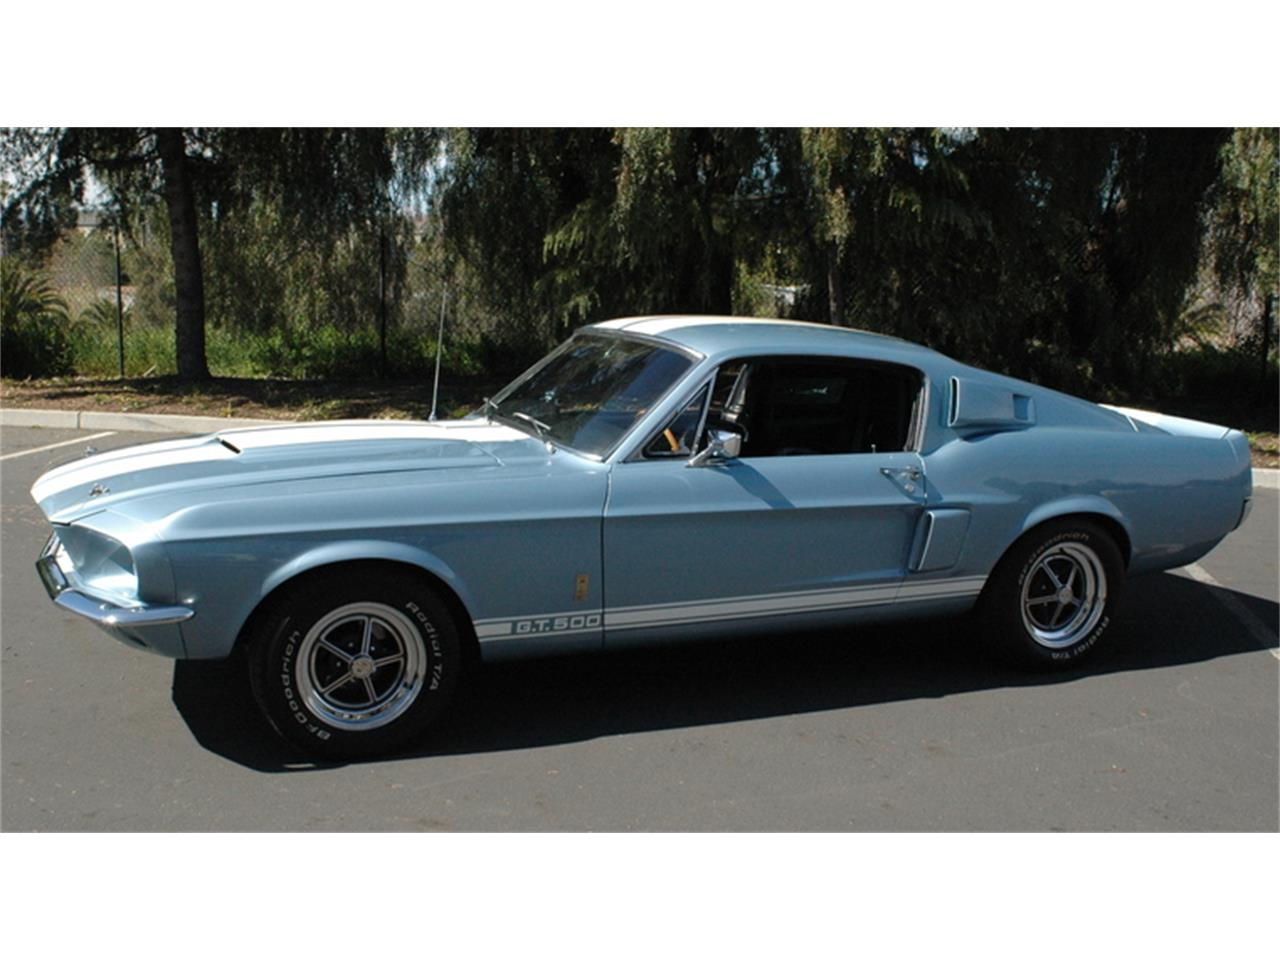 Large picture of 67 mustang shelby gt500 ktp5